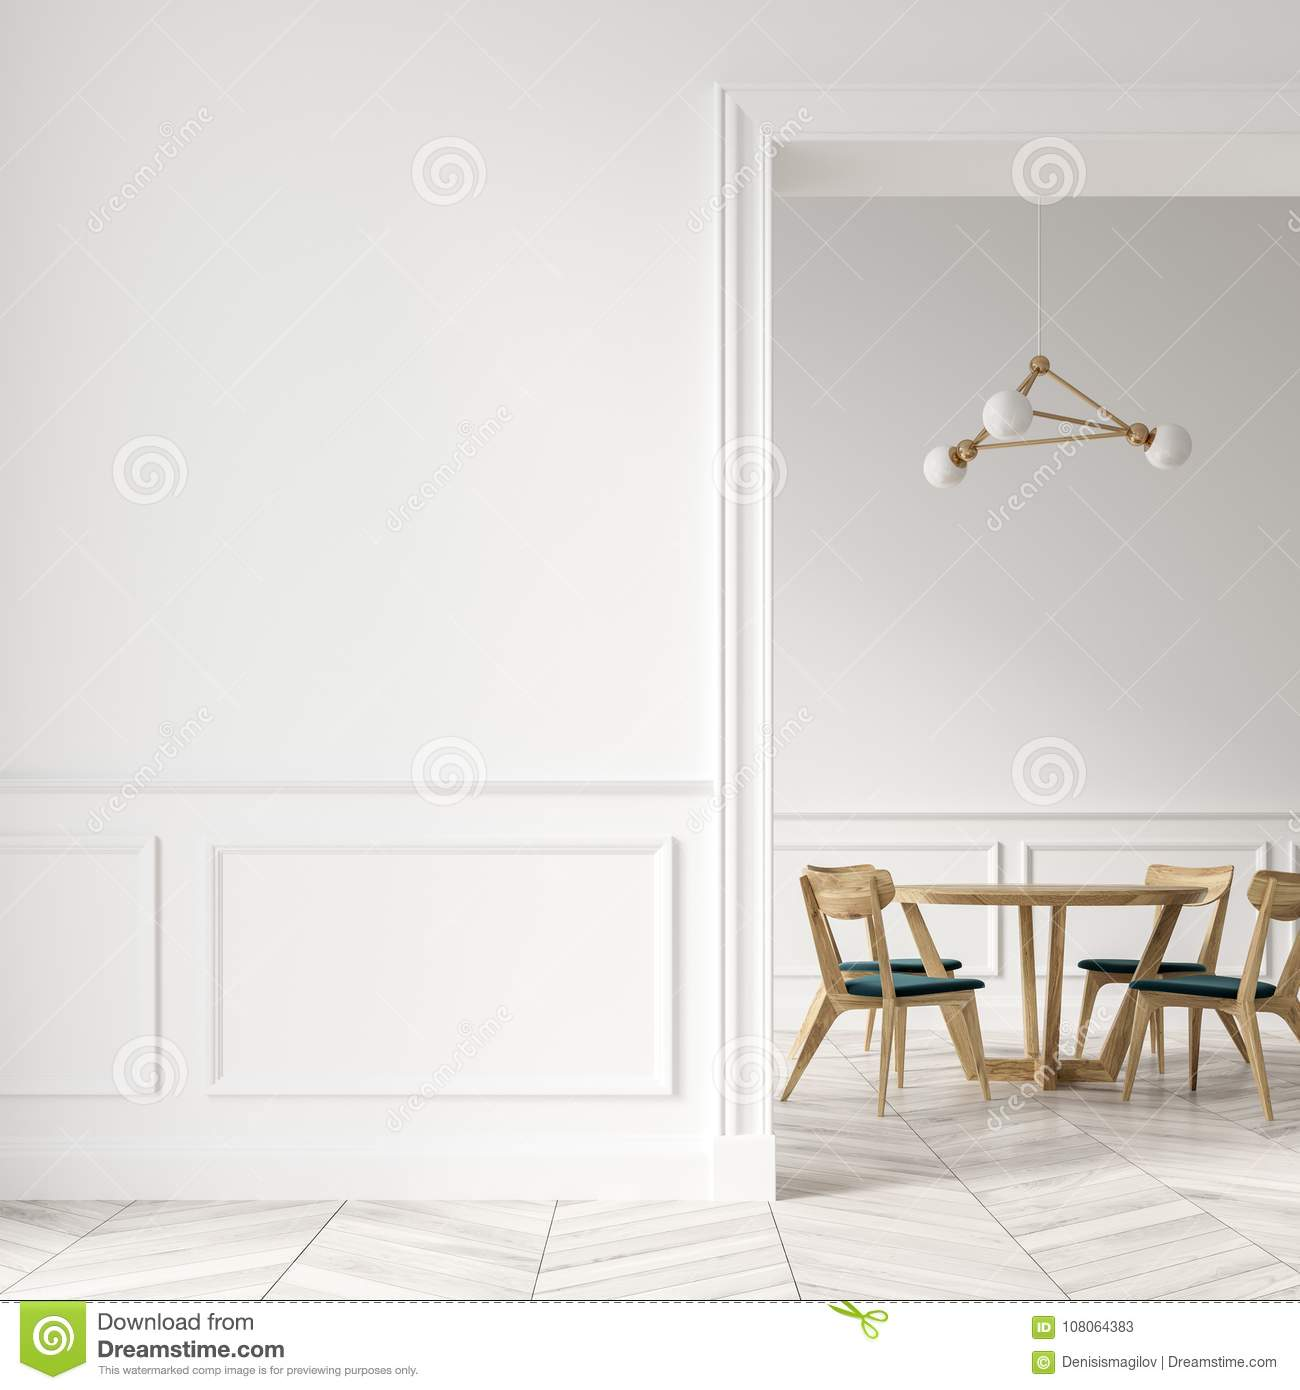 Modern Dining Room Interior With White Walls A Wooden Floor And Table Green Chairs Doorway Blank Wall Fragment